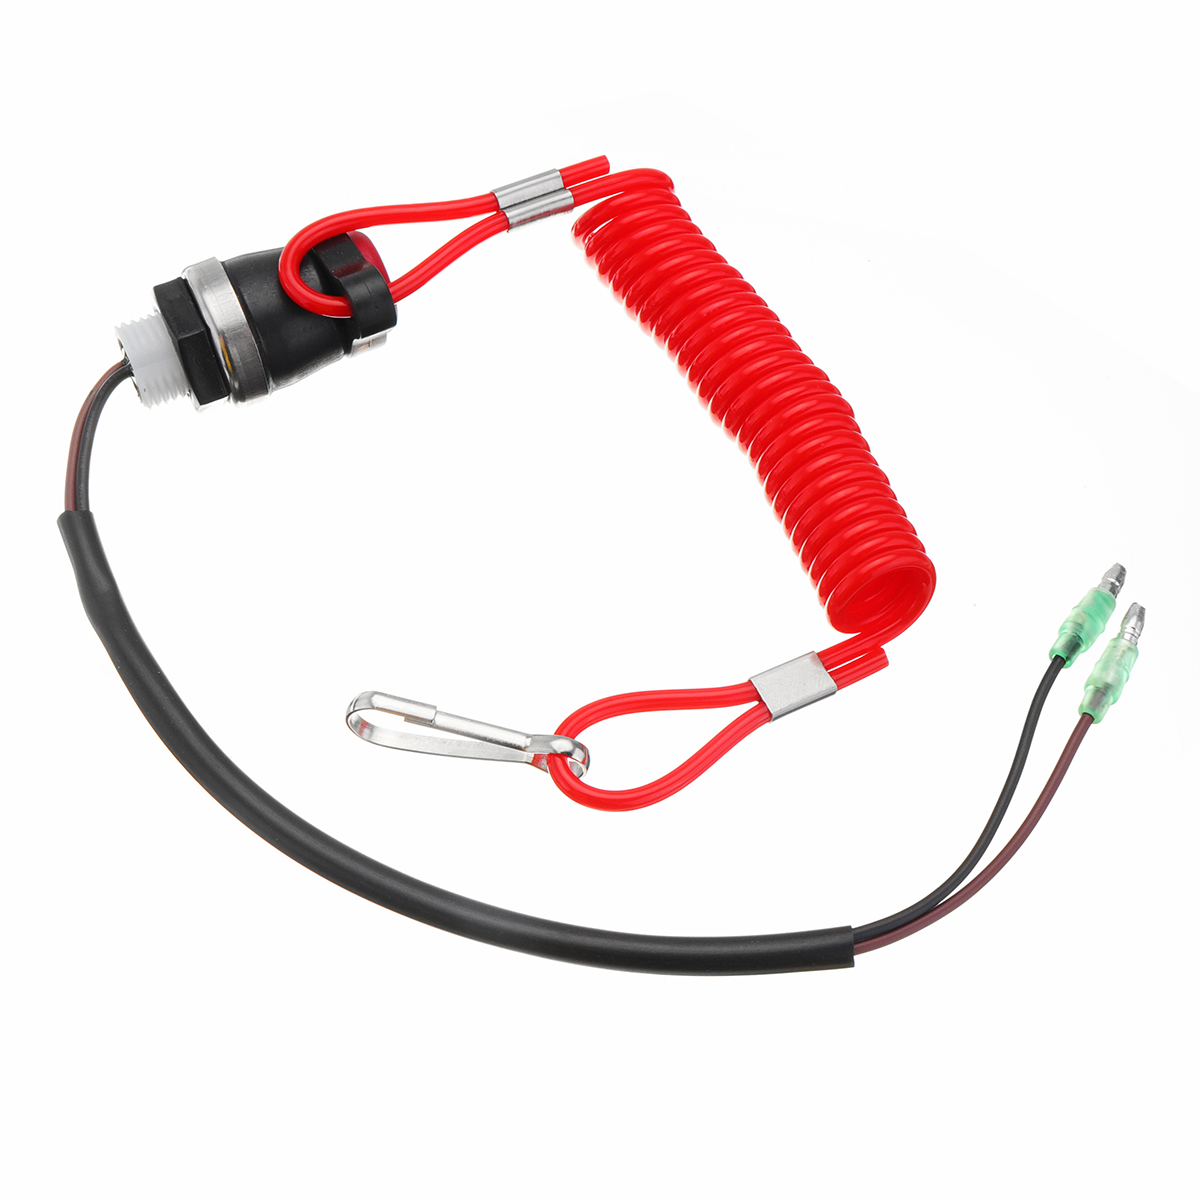 Boat Kill Switch Tether Cord Lanyard Red For Marine Mercury Tohatsu Outboard Engine